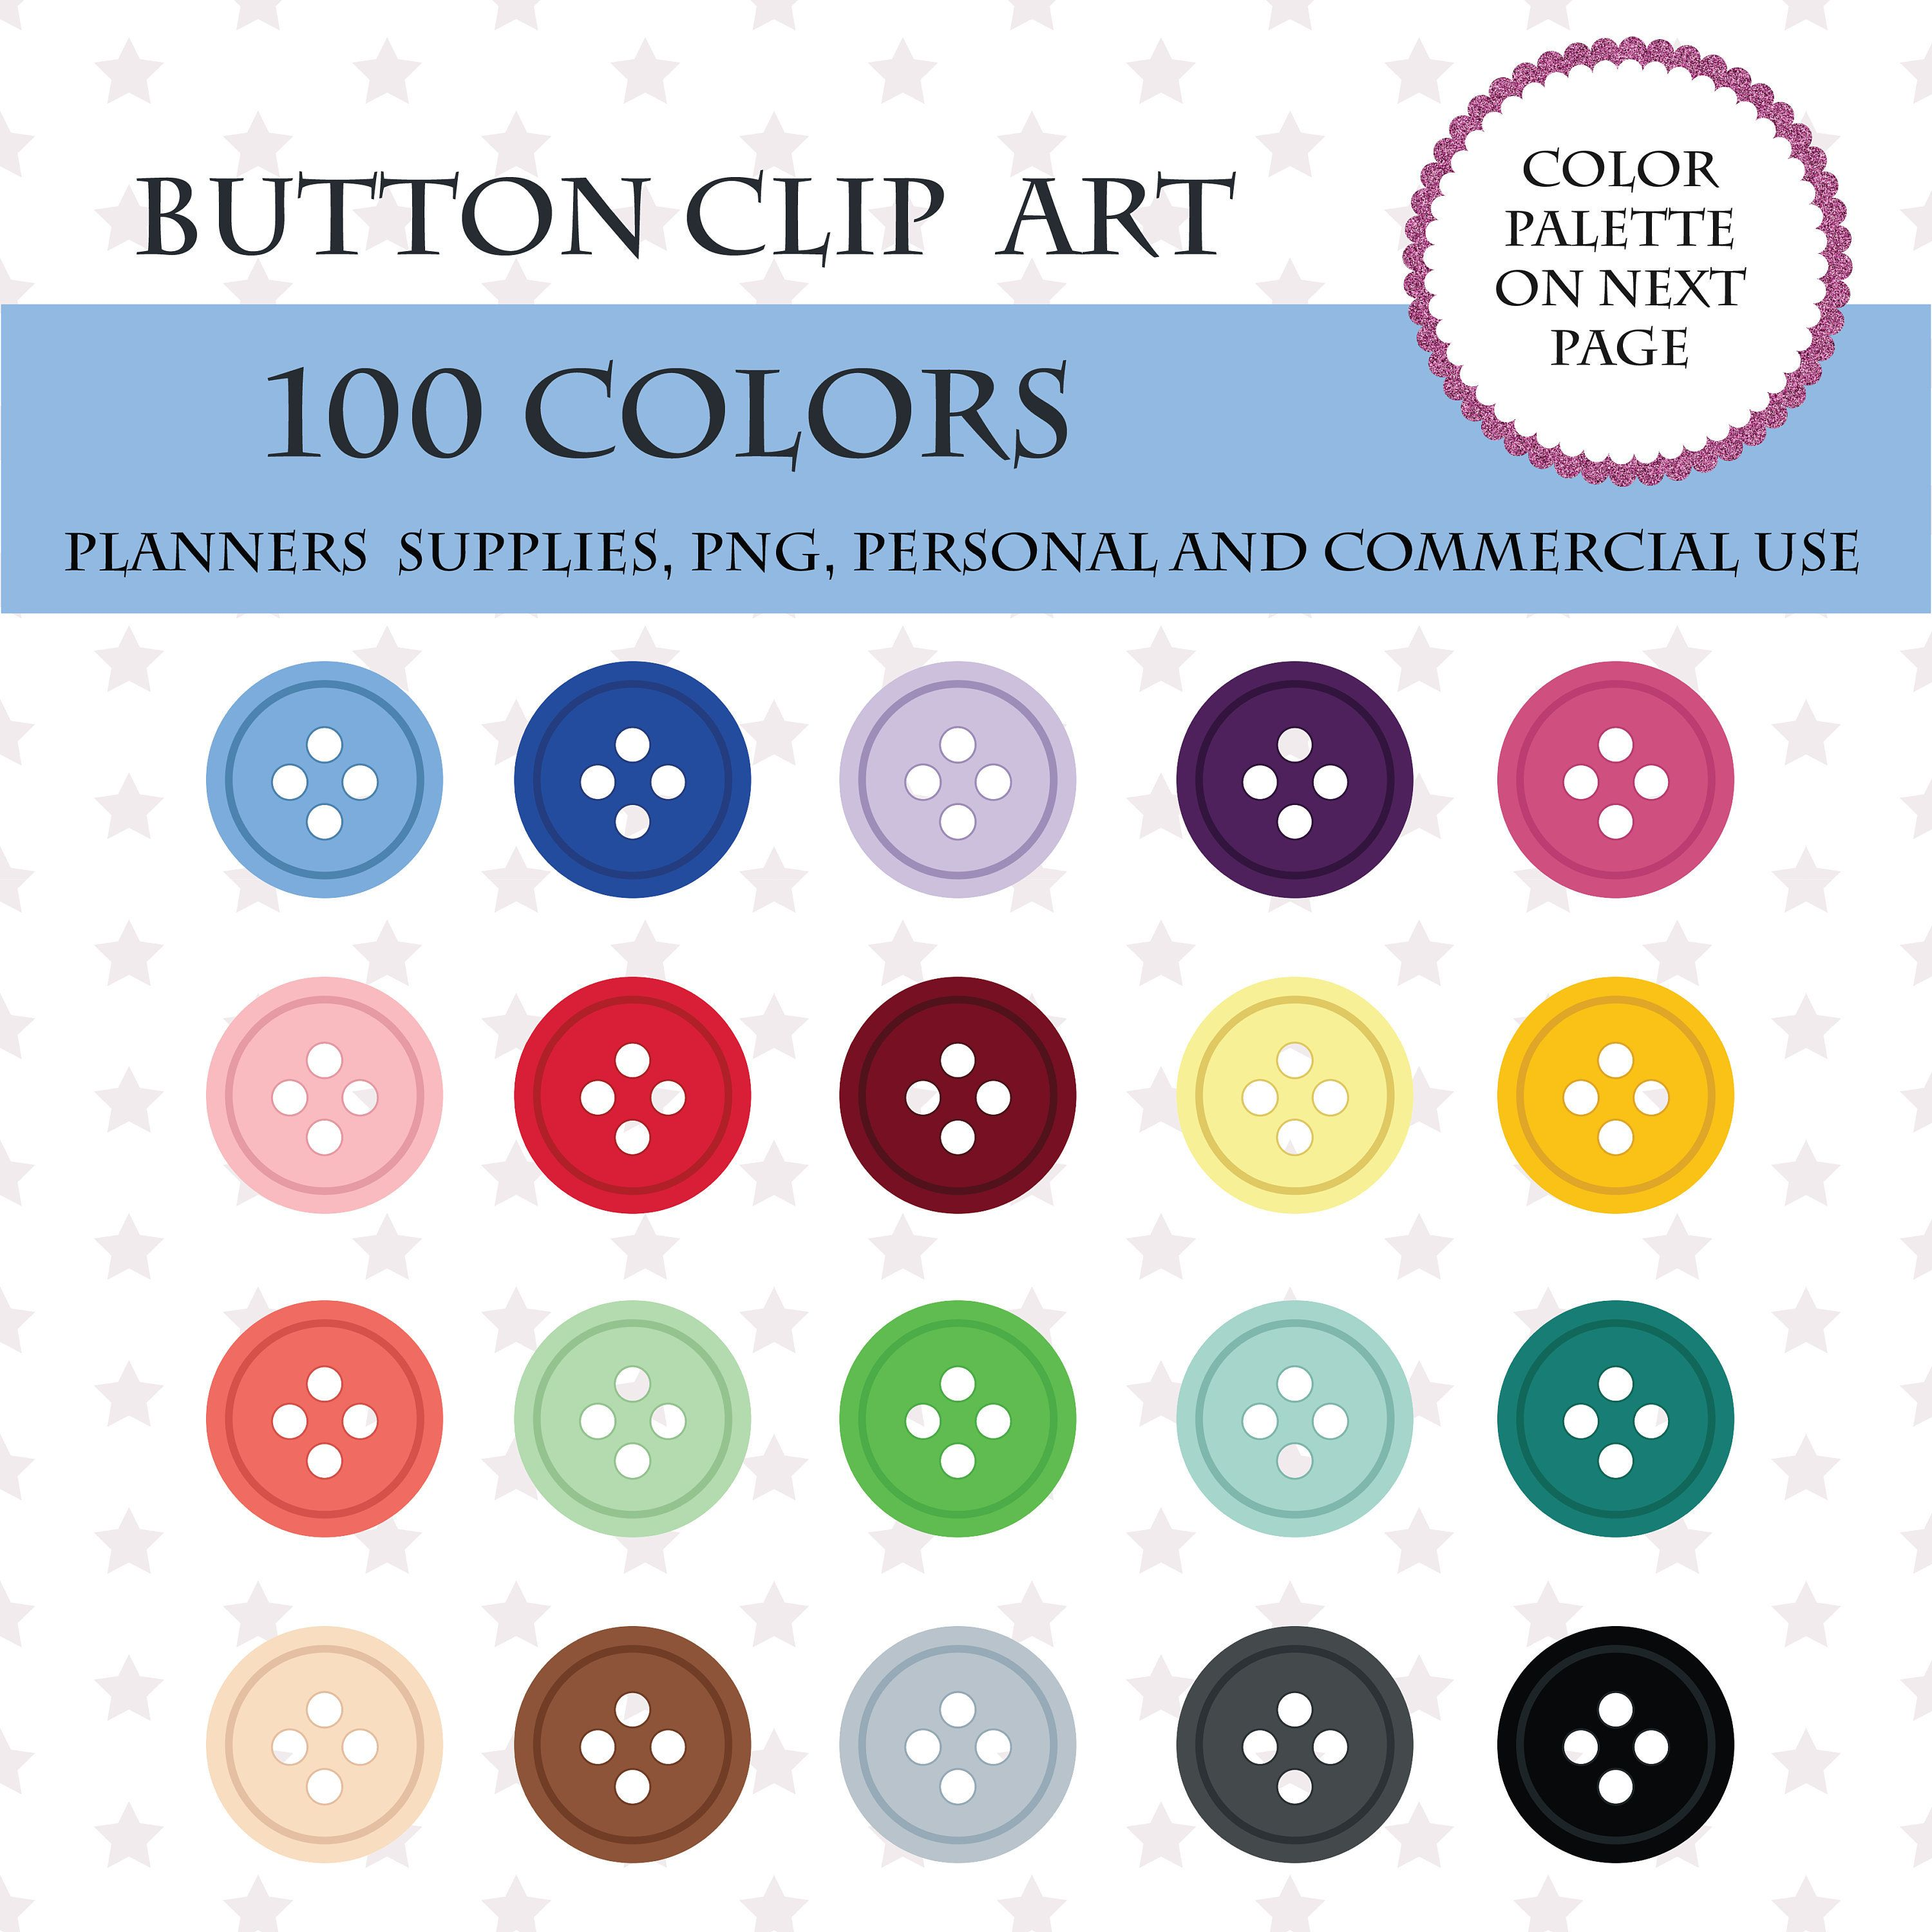 printable 100 buttons clipart button art digital sewing elements clip art cute rainbow buttons commercal use pl61 [ 3000 x 3000 Pixel ]